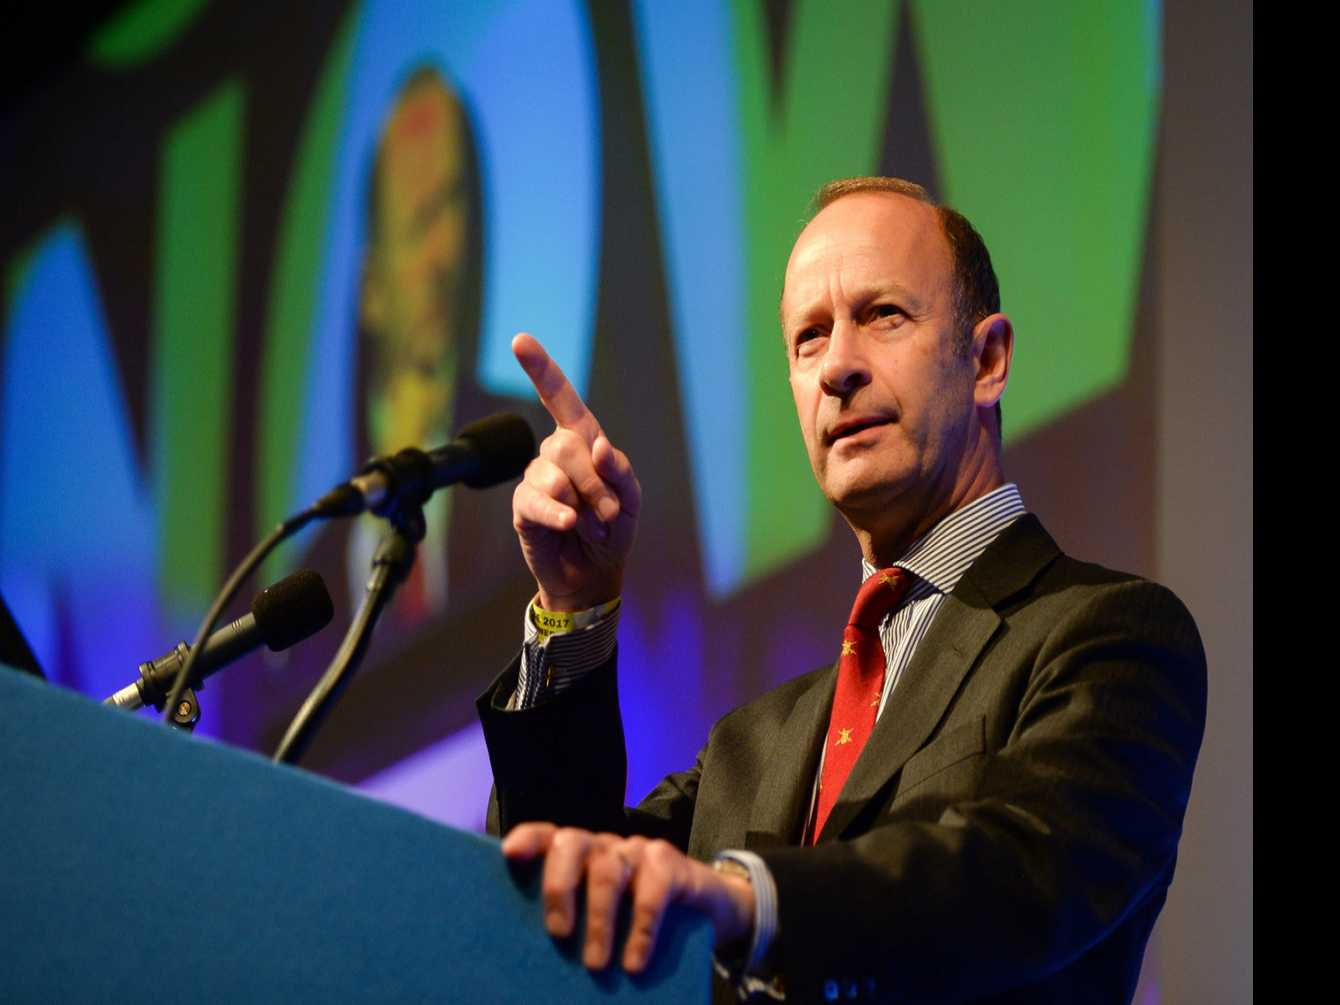 UKIP Leader Breaks Up with Girlfriend Over Racist Texts